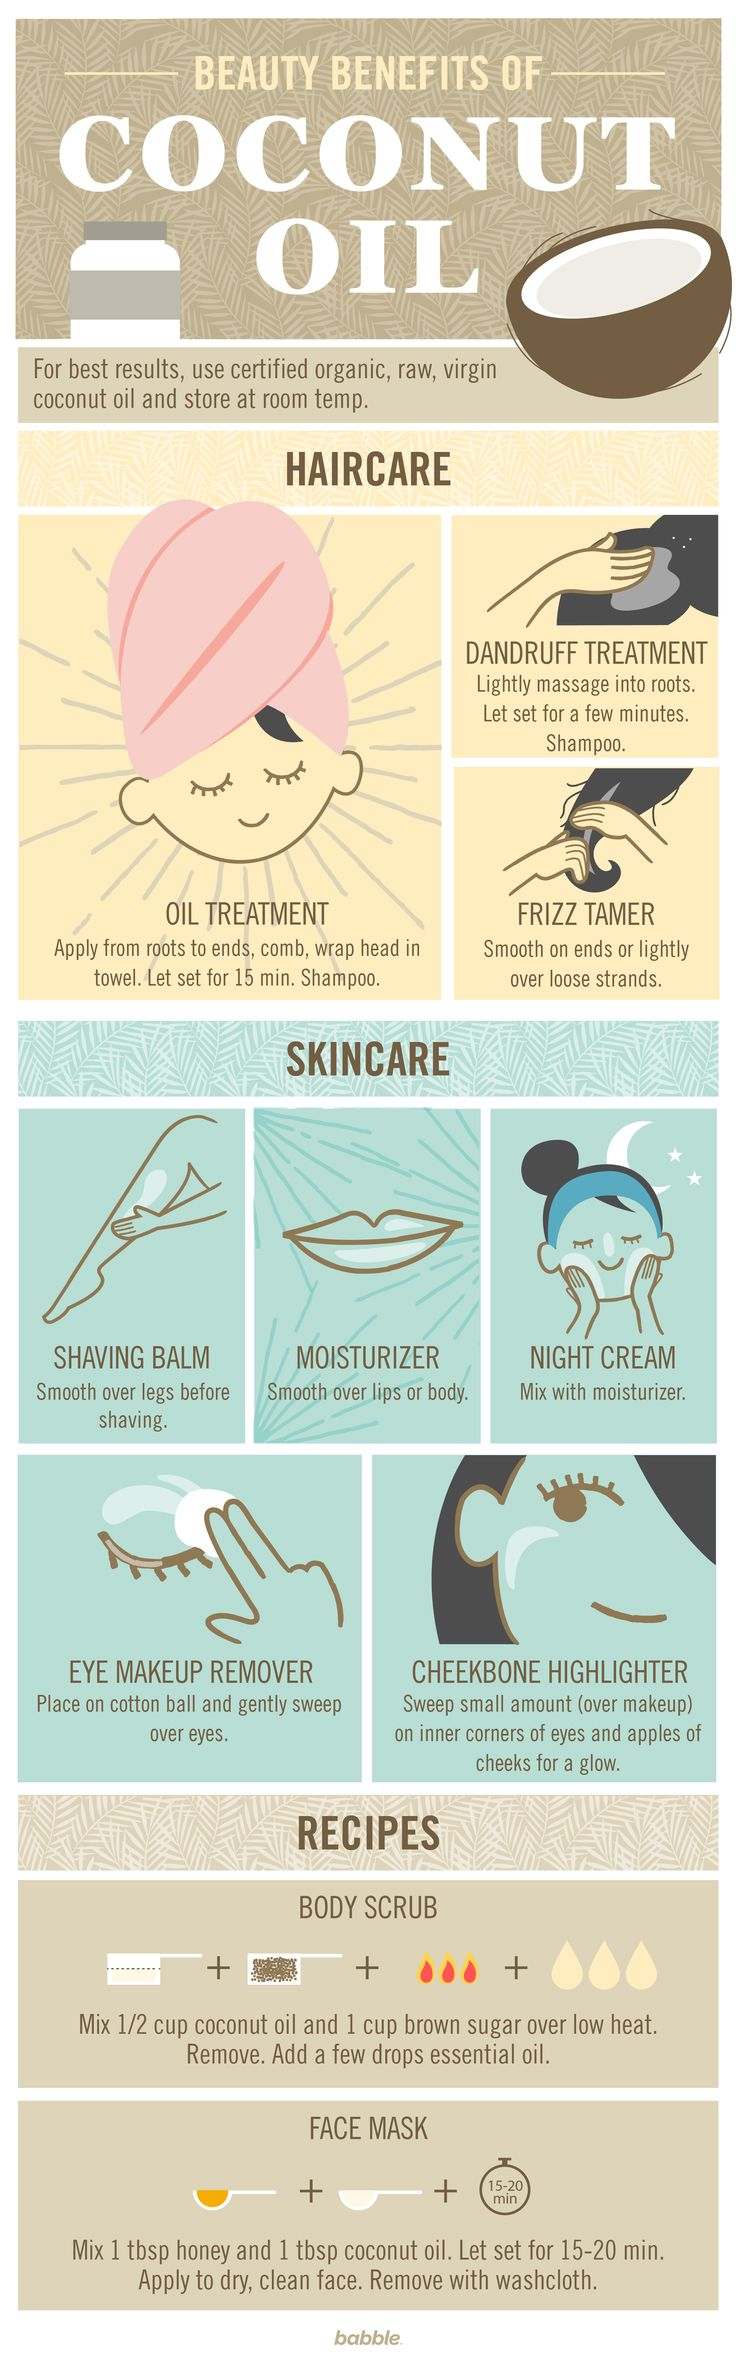 Coconut oil is everywhere right now. You don't know whether to eat it, drink it, or bathe in it. Try these great beauty uses for coconut oil tonight!